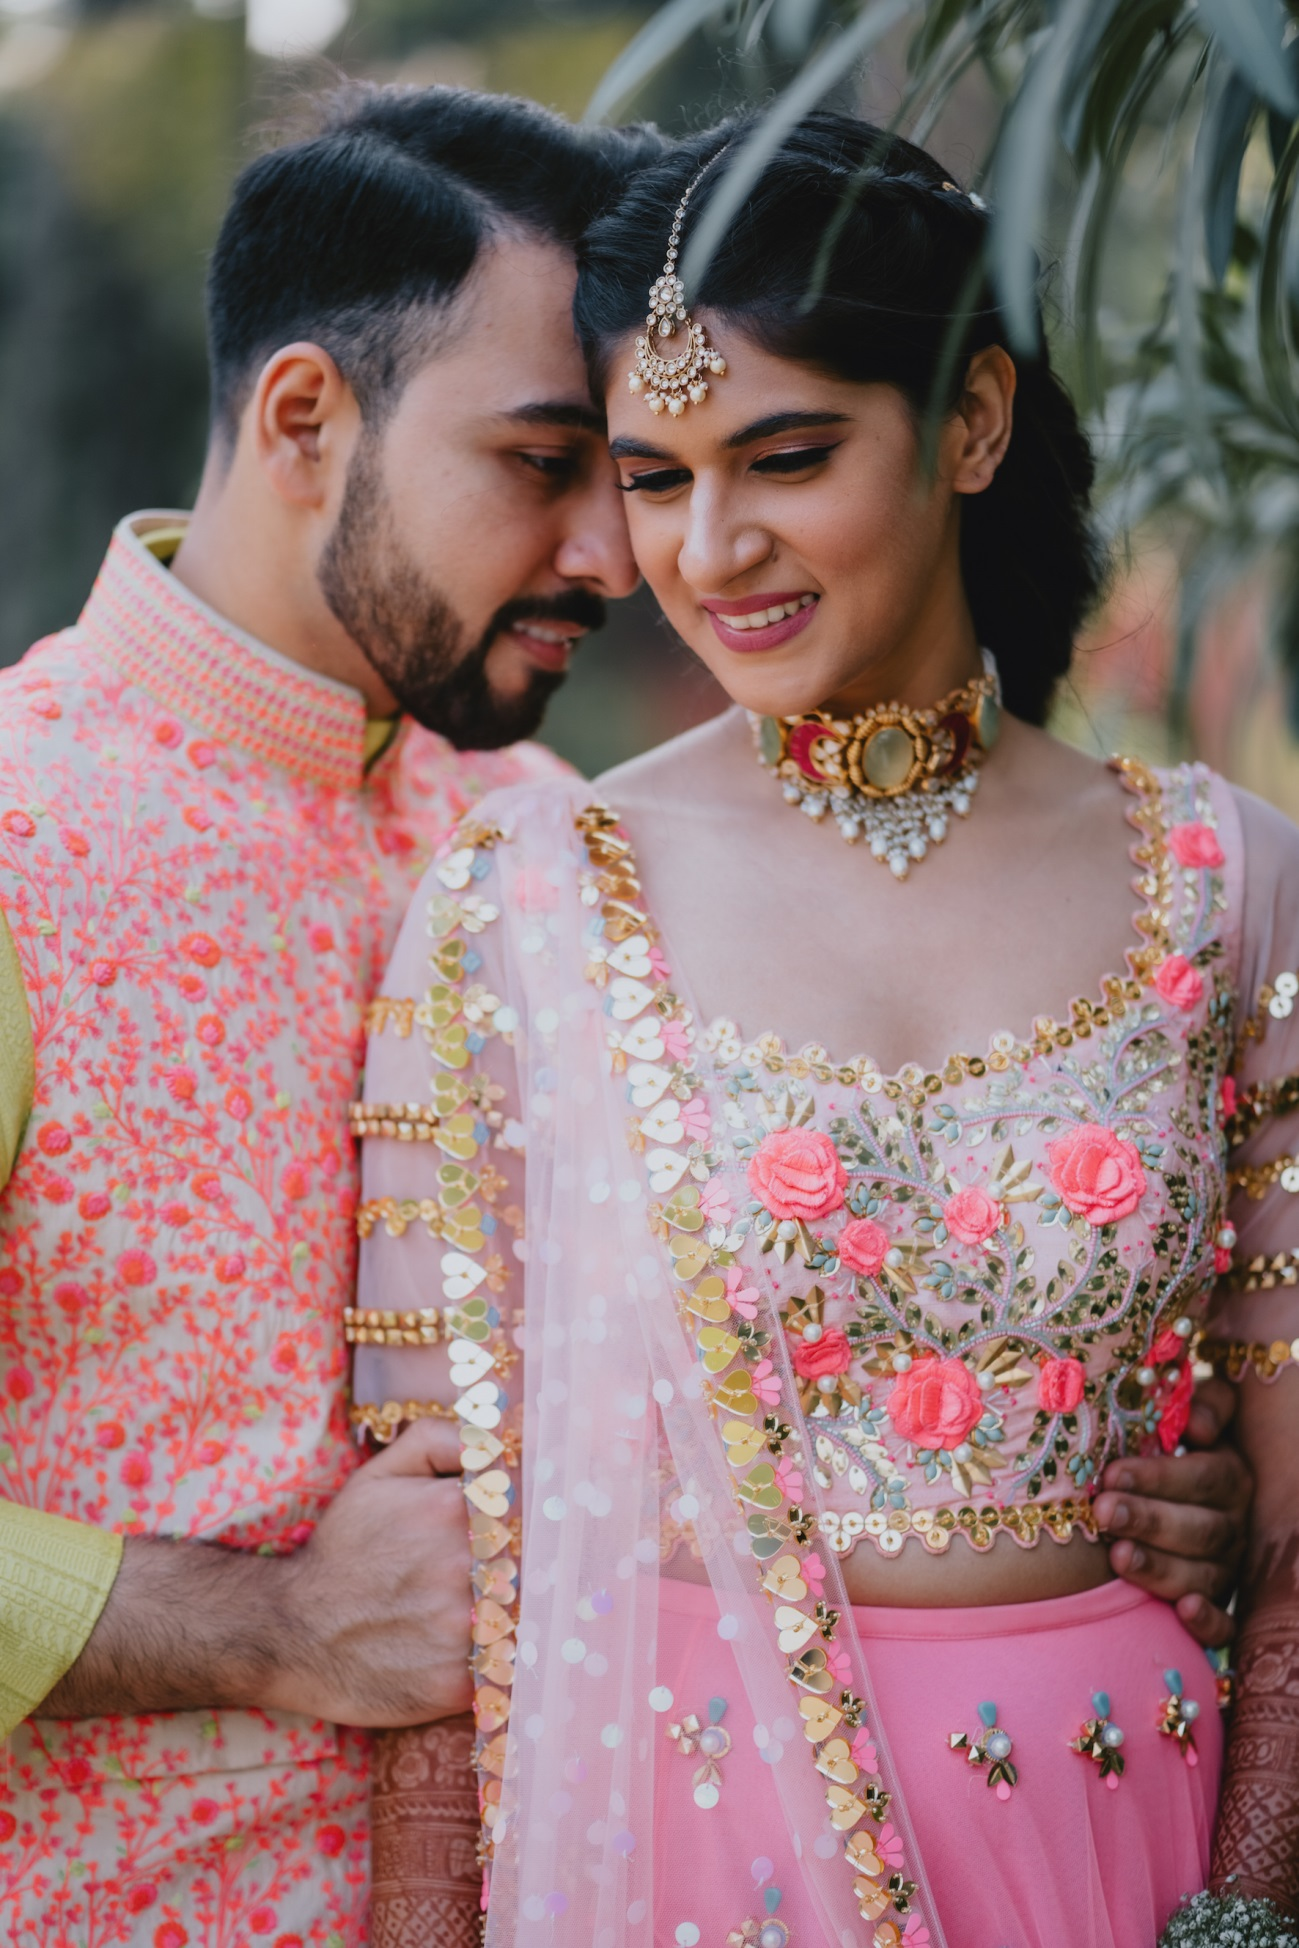 Traditiona bride and groom wear